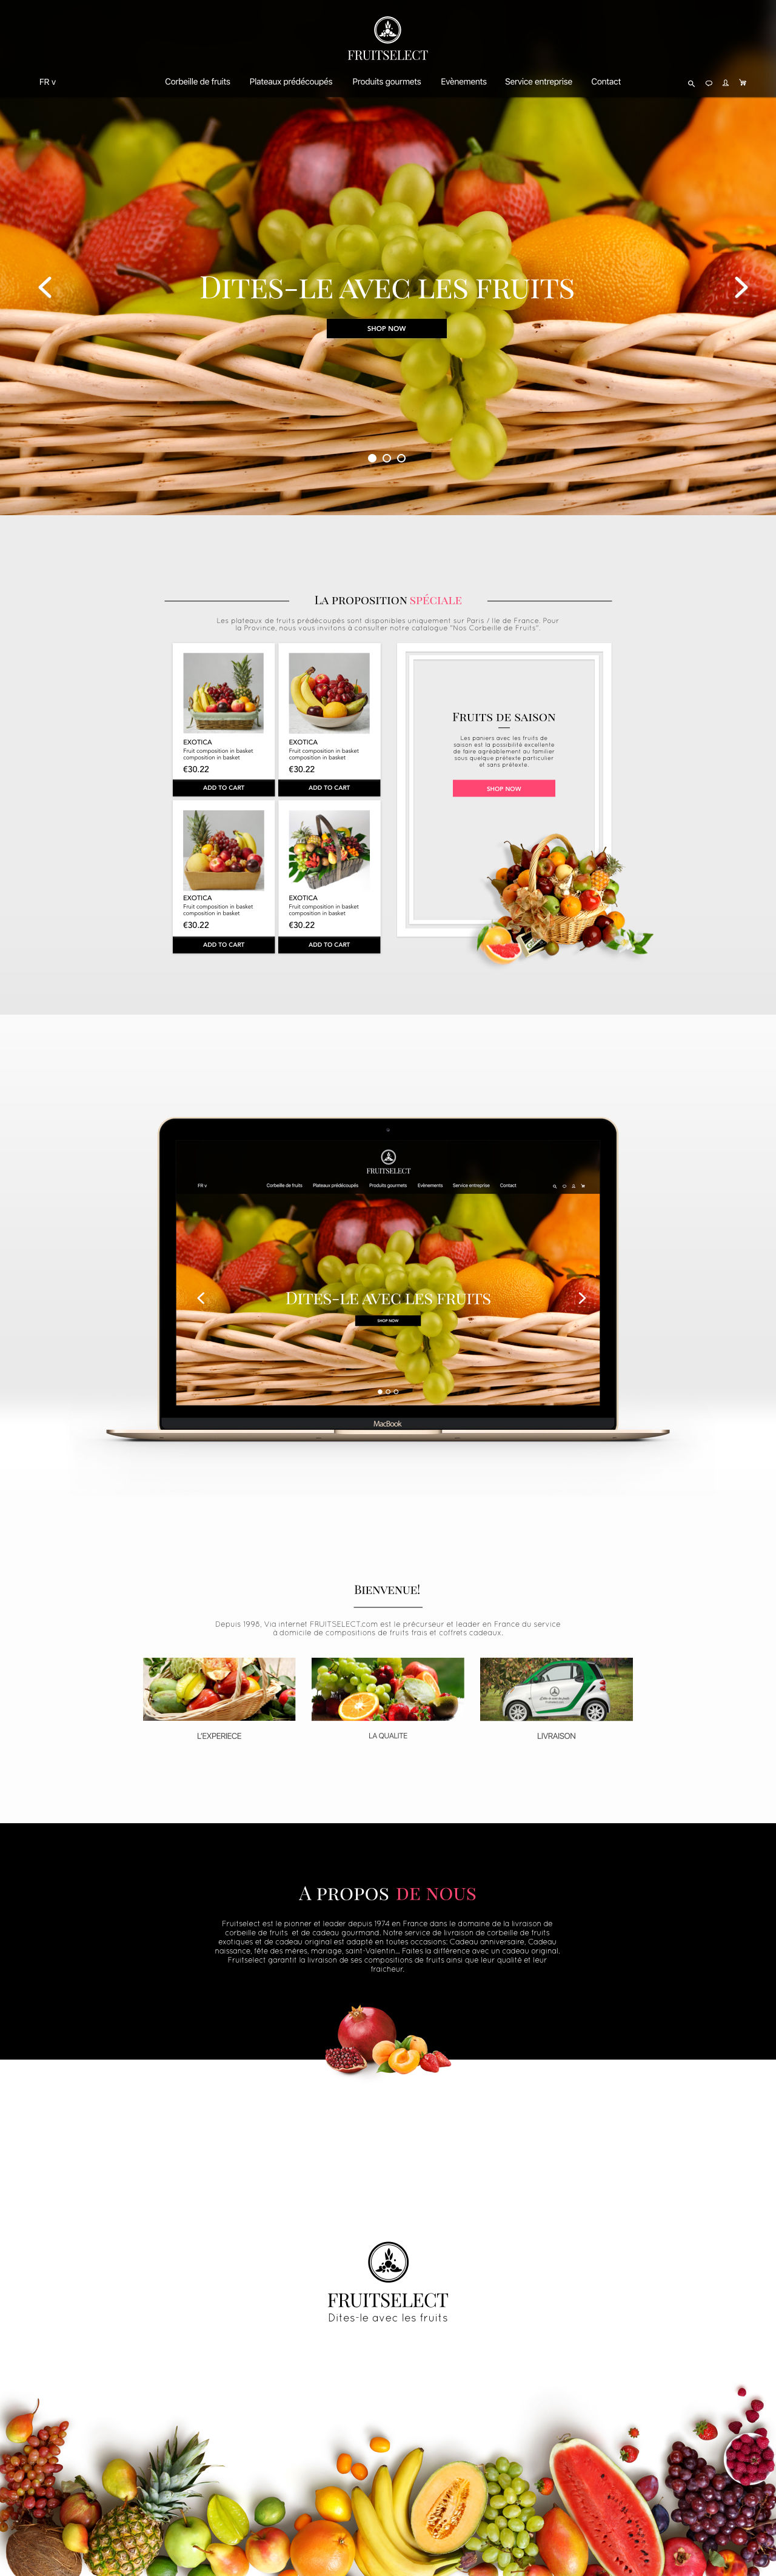 Le concept du site pour FRUITSELECT